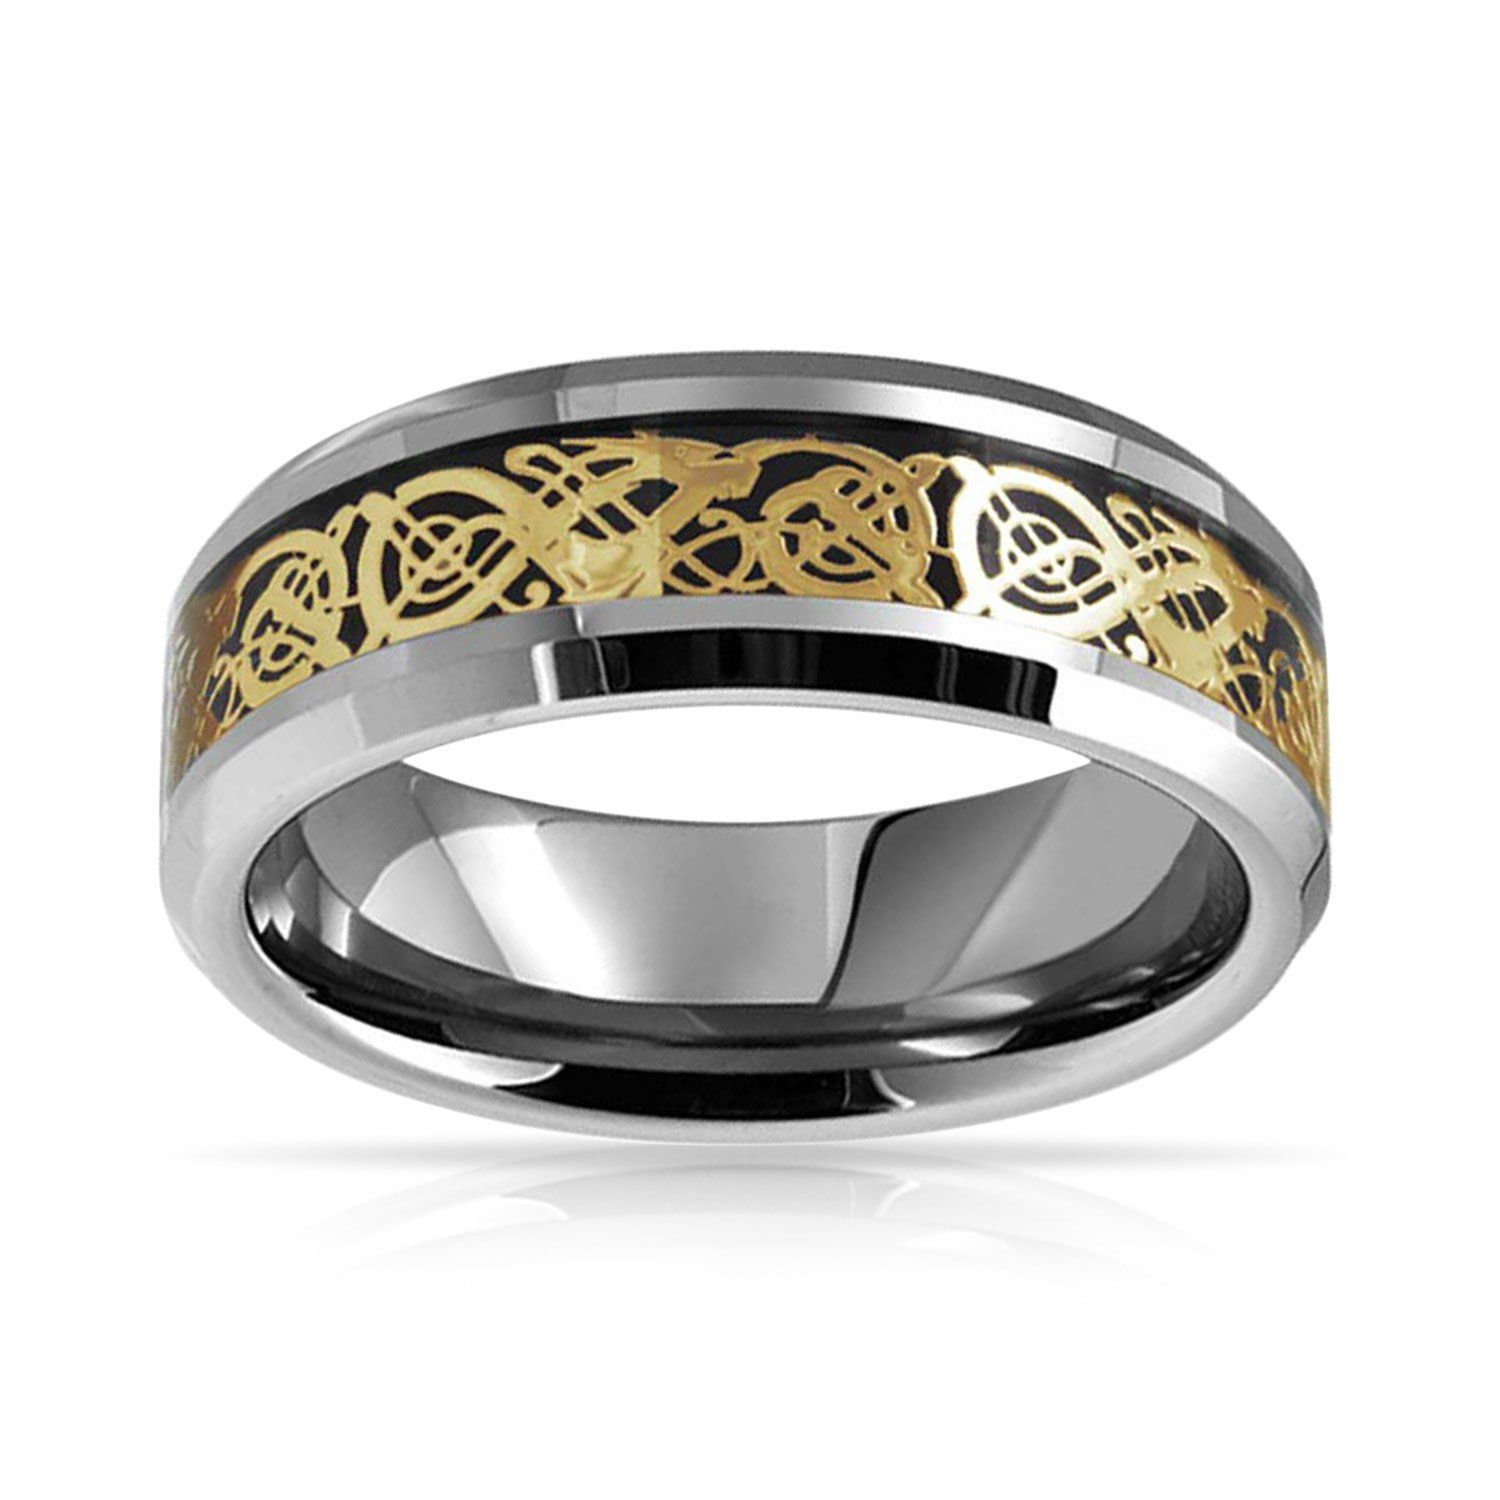 Bling Jewelry Golden Black Silver Two Tone Celtic Knot Dragon Inlay Couples Titanium Wedding Band Rings/ for/ Men for Women 8MM